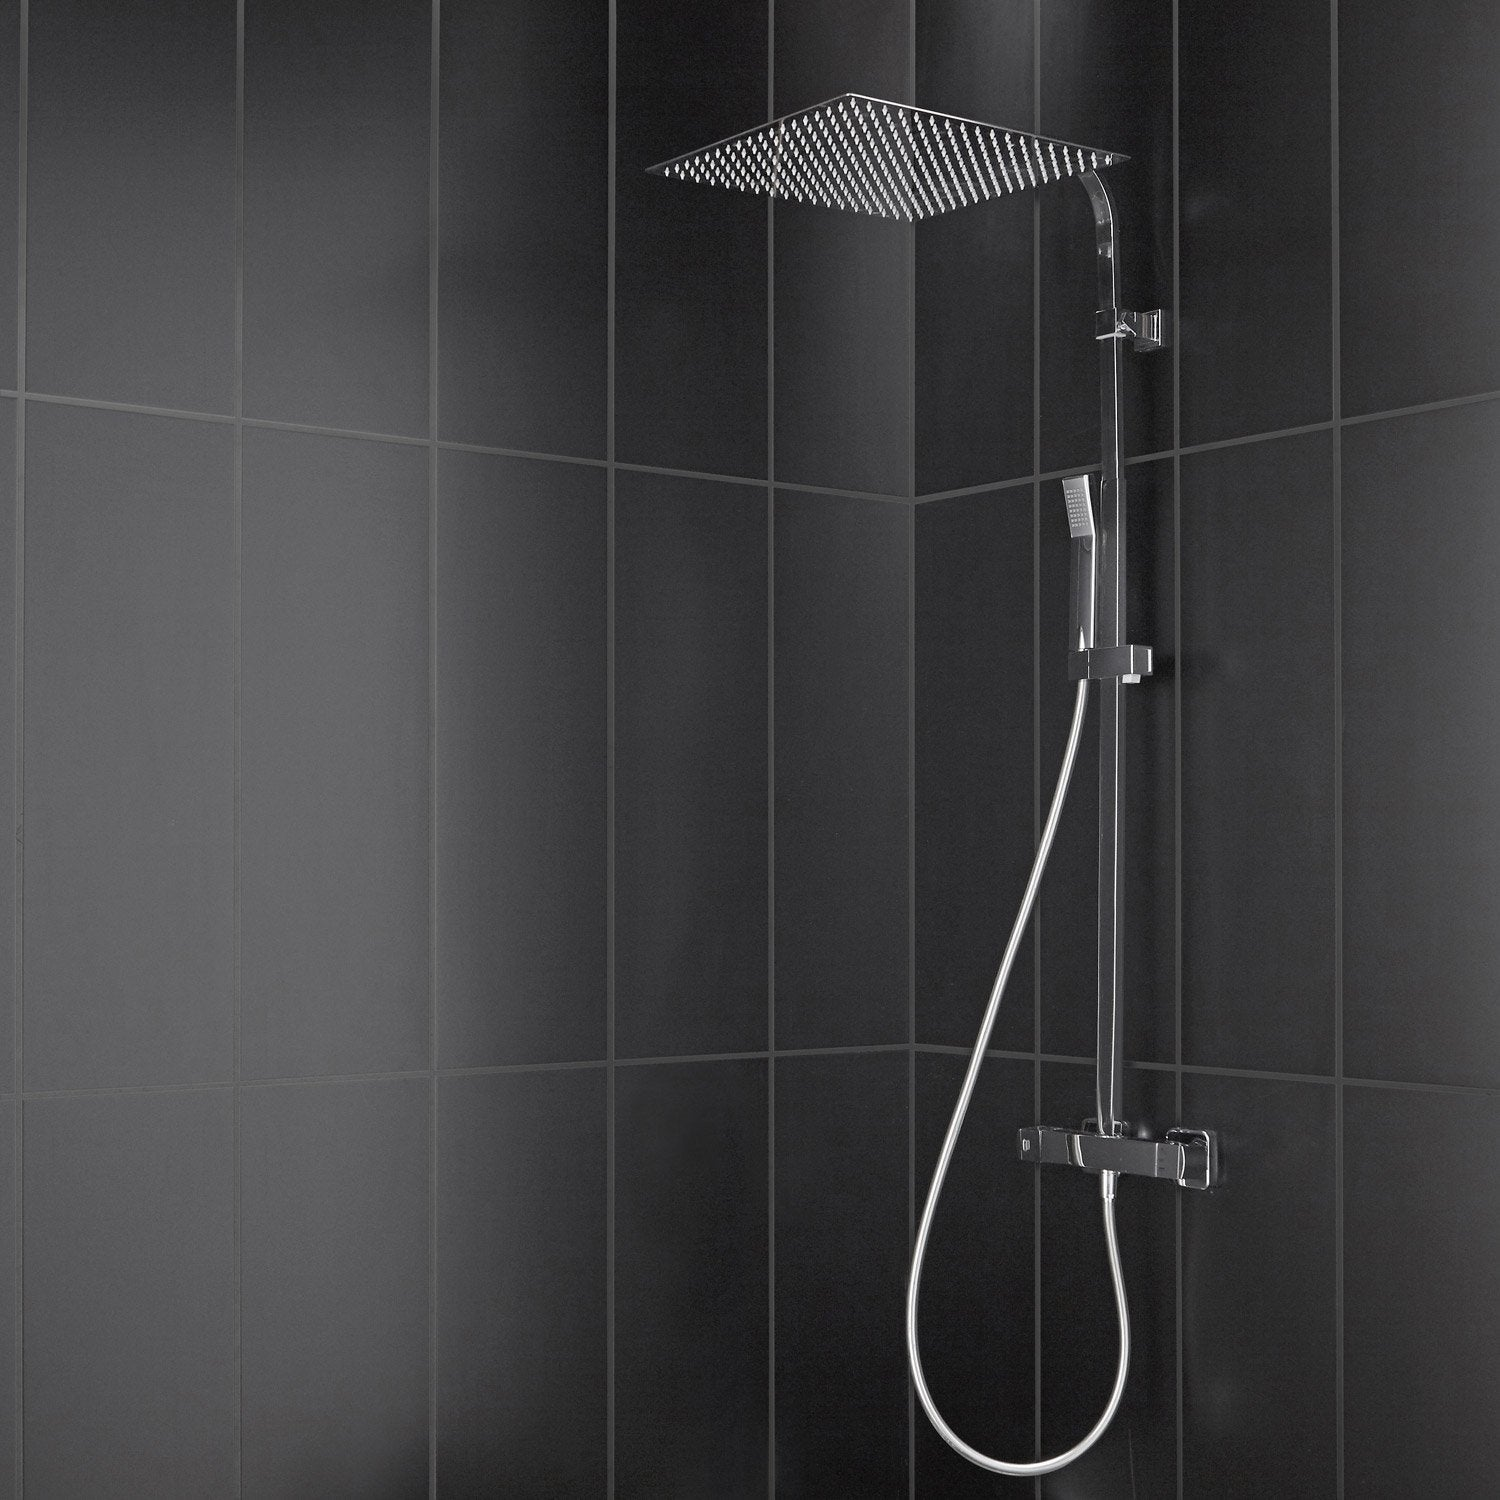 Lino salle de bain leroy merlin for Carrelage relief